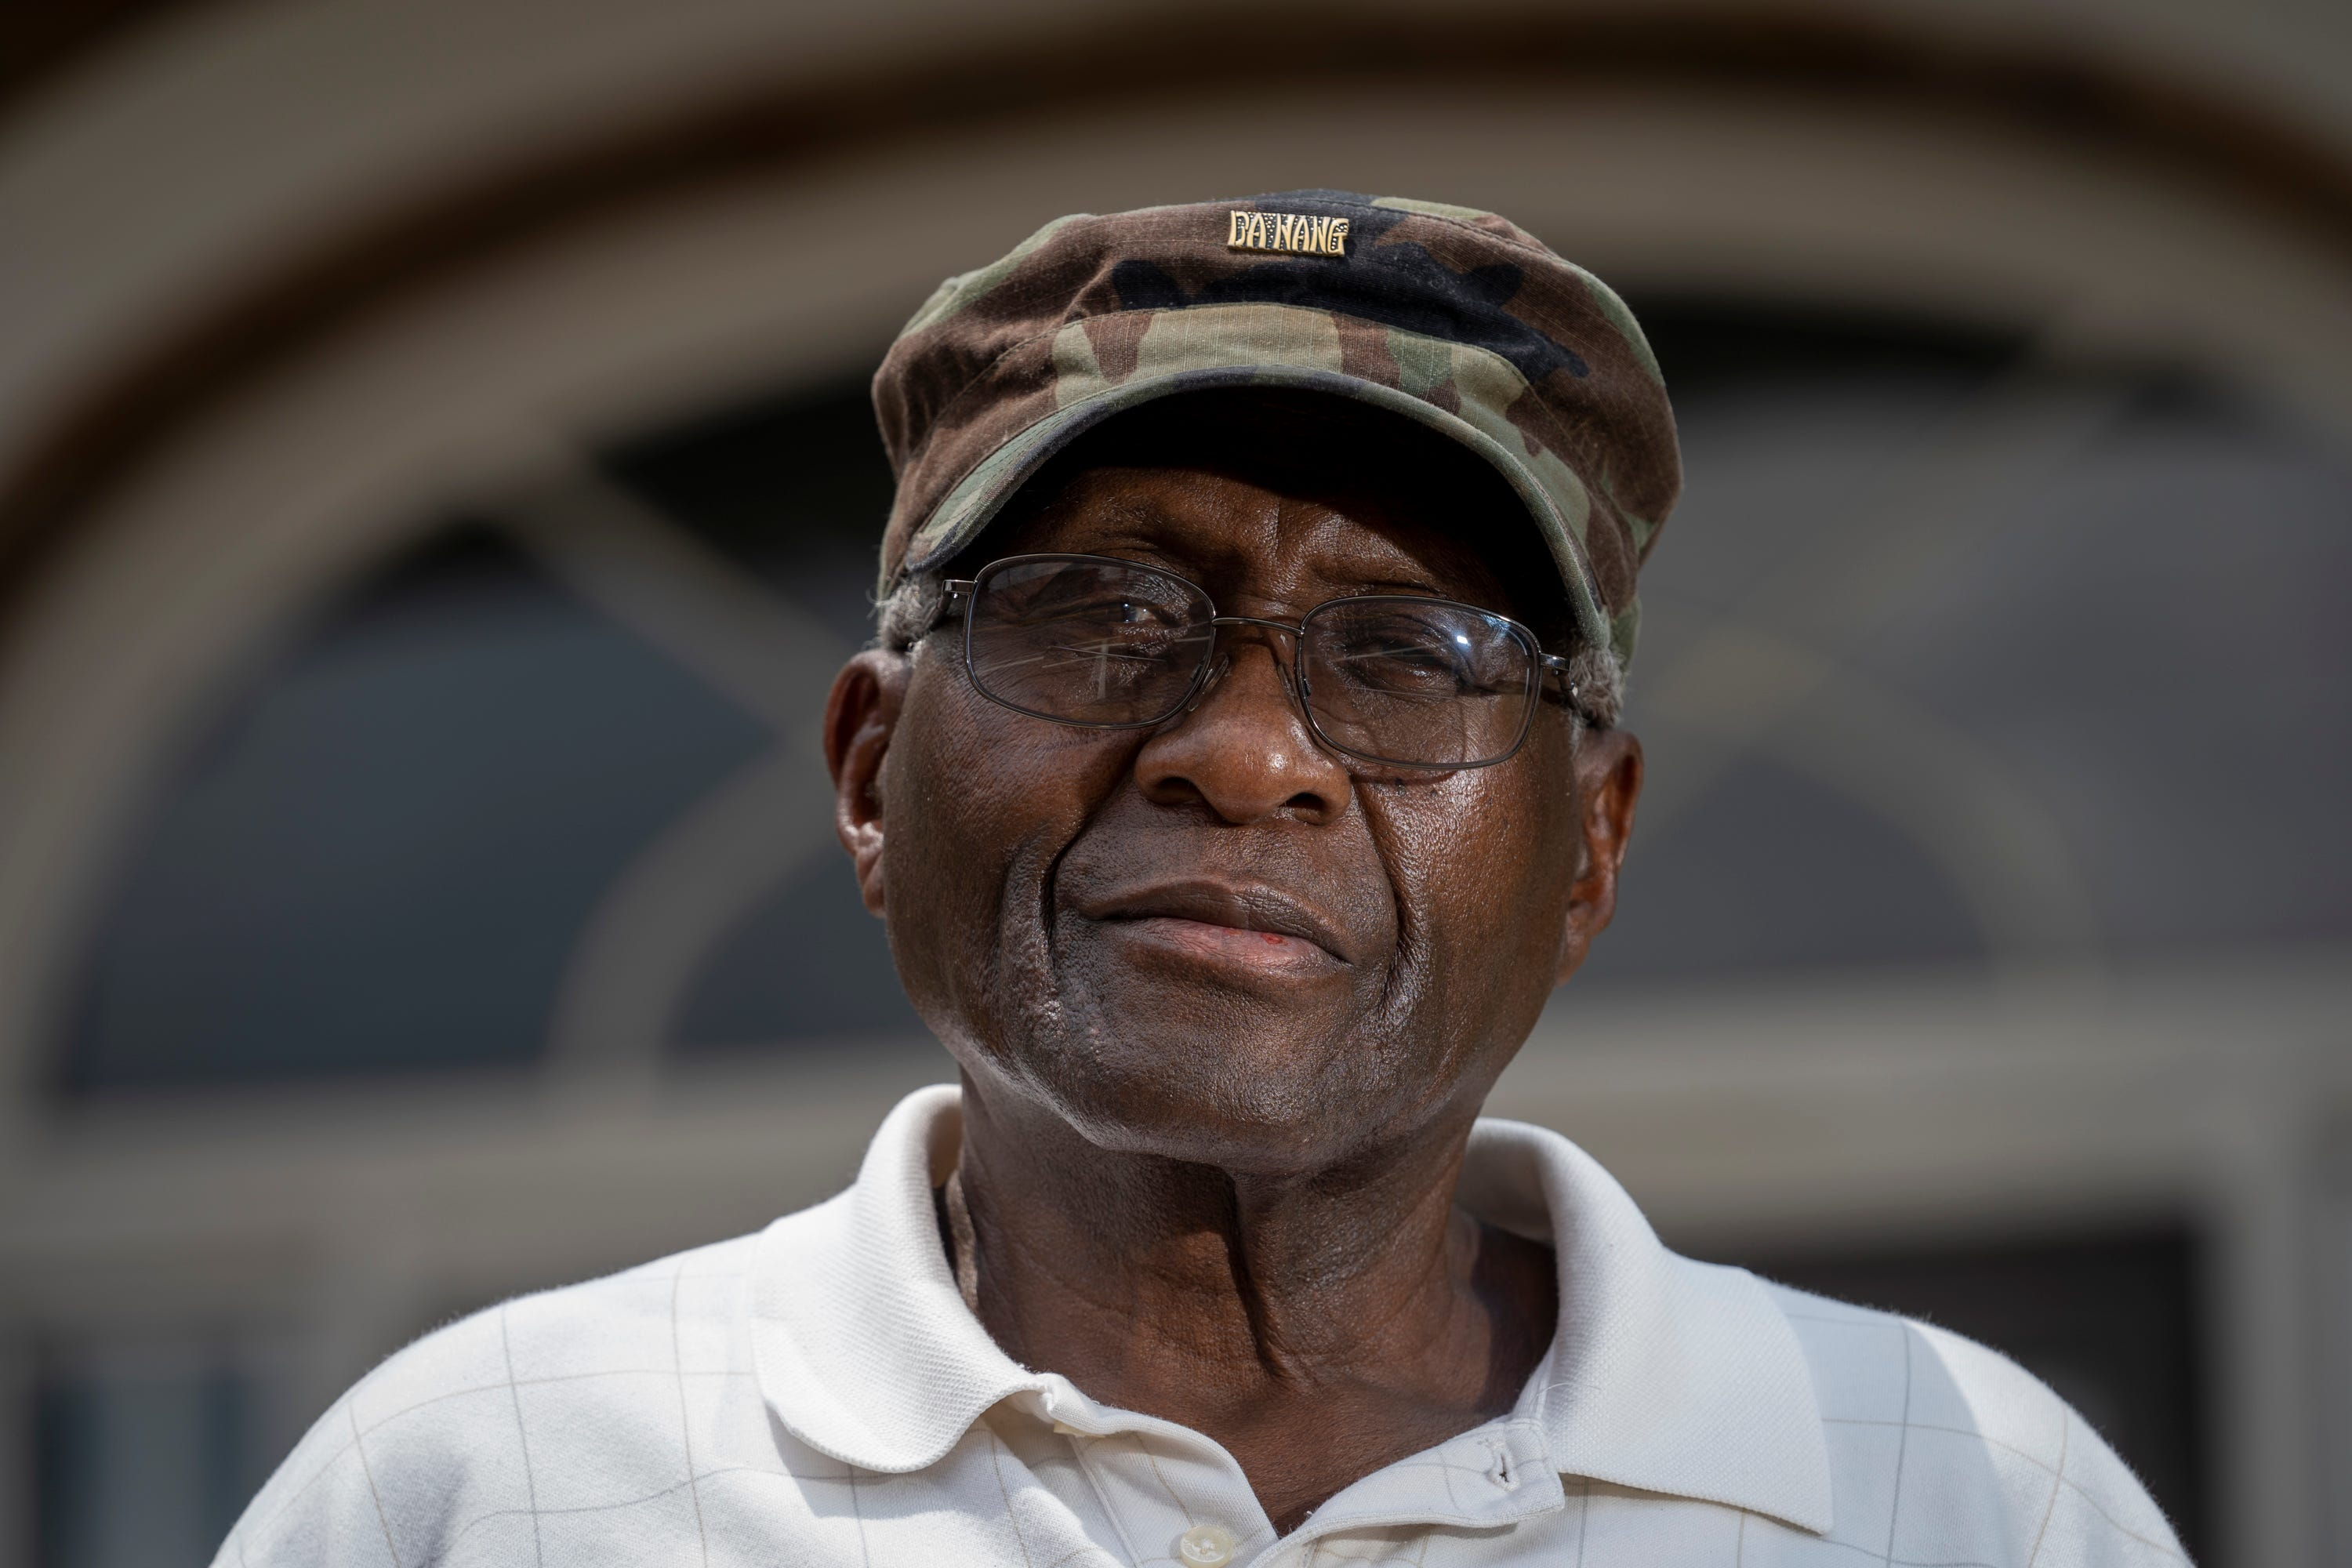 """Robert """"Bobby"""" Talbert, who was arrested in 1961 for sitting in the whites-only section of a Greyhound bus station, stands for a portrait on the front steps of McComb City Hall in Mississippi."""